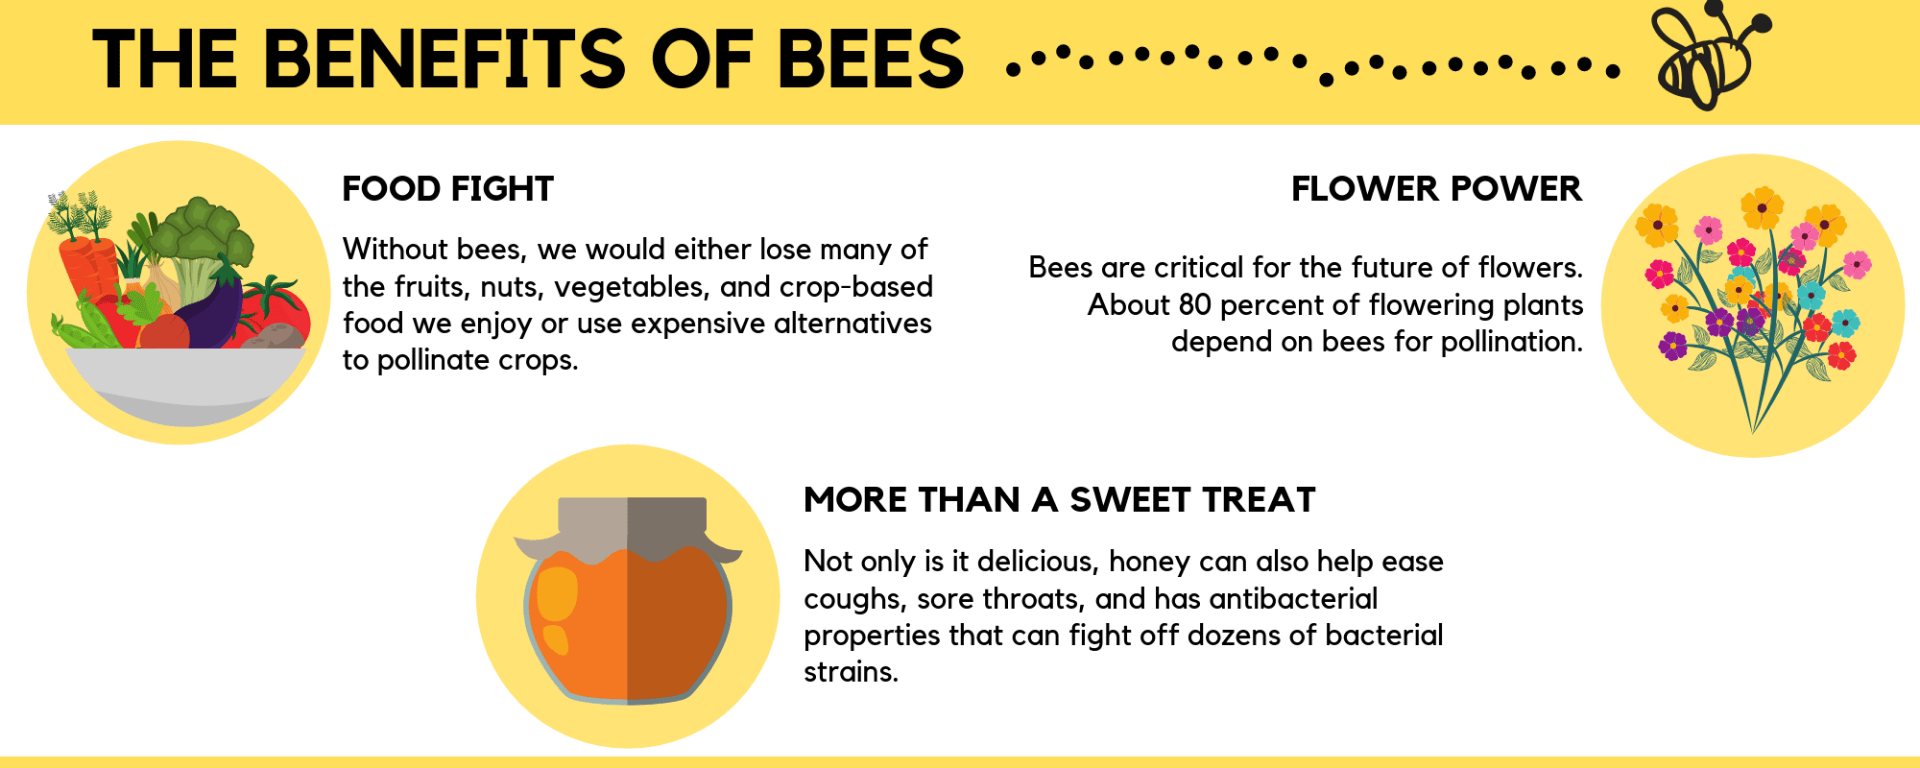 Benefits of Bees: 1) Without bees we would either lose many of the fruits, nuts , vegetables, and crop-based food we enjoy or use expensive alternatives to pollinate crops, 2) Not only is it delicions, honey can also help ease coughs, sore throats, and has antibacterial properties that can fight off dozens of bacterial strains, 3) Bees are critical for the future of flowers. About 80 percent of the flowering plants depend on bees for pollination.